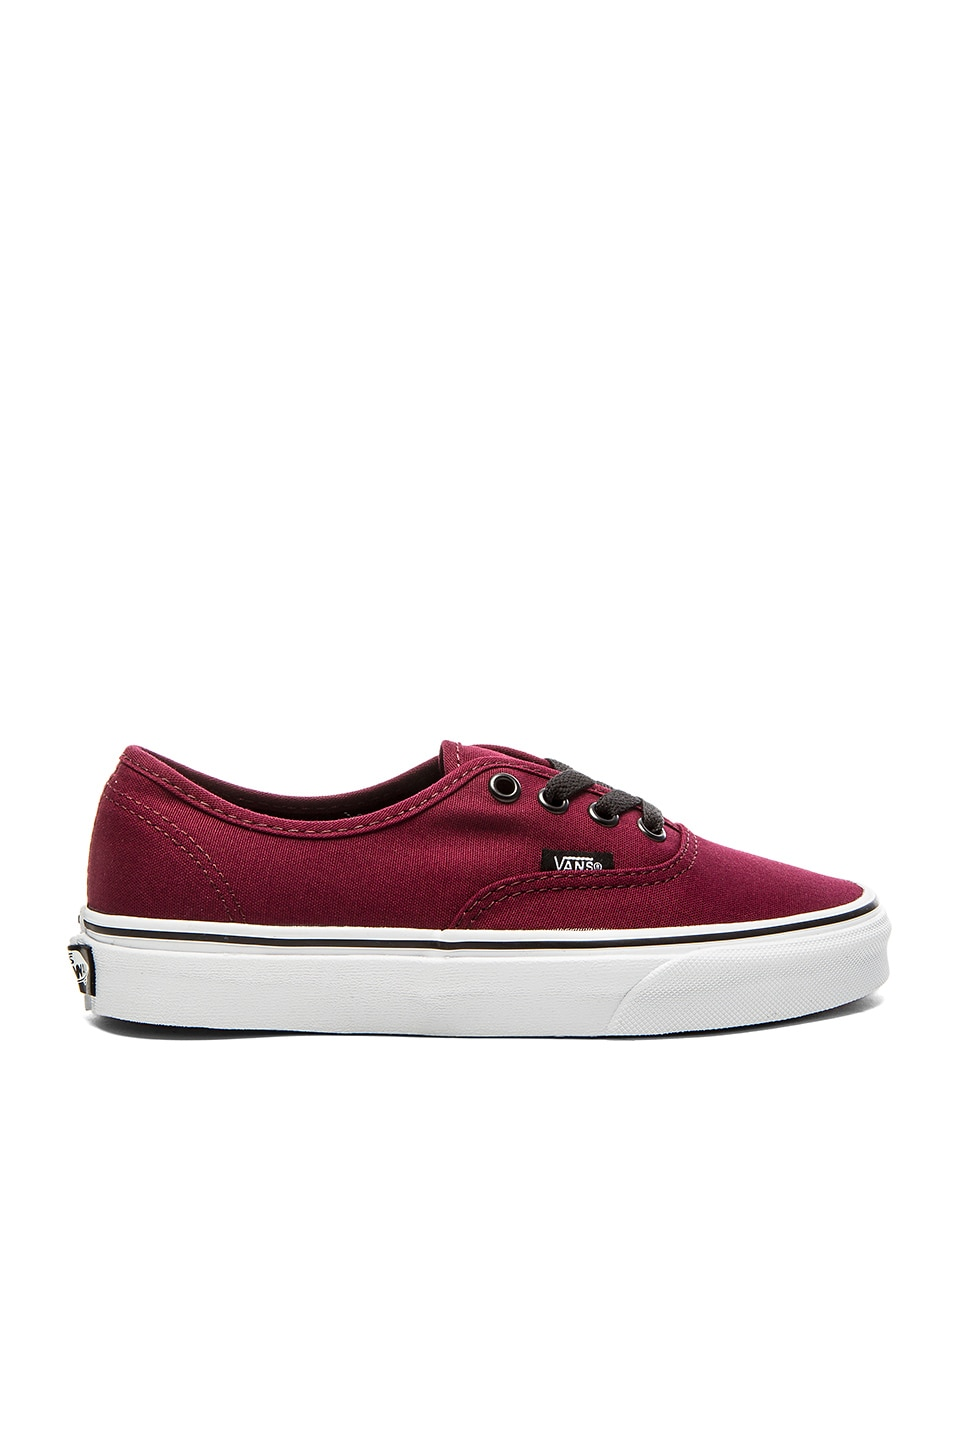 Vans Authentic Sneaker en Port Royale & Black